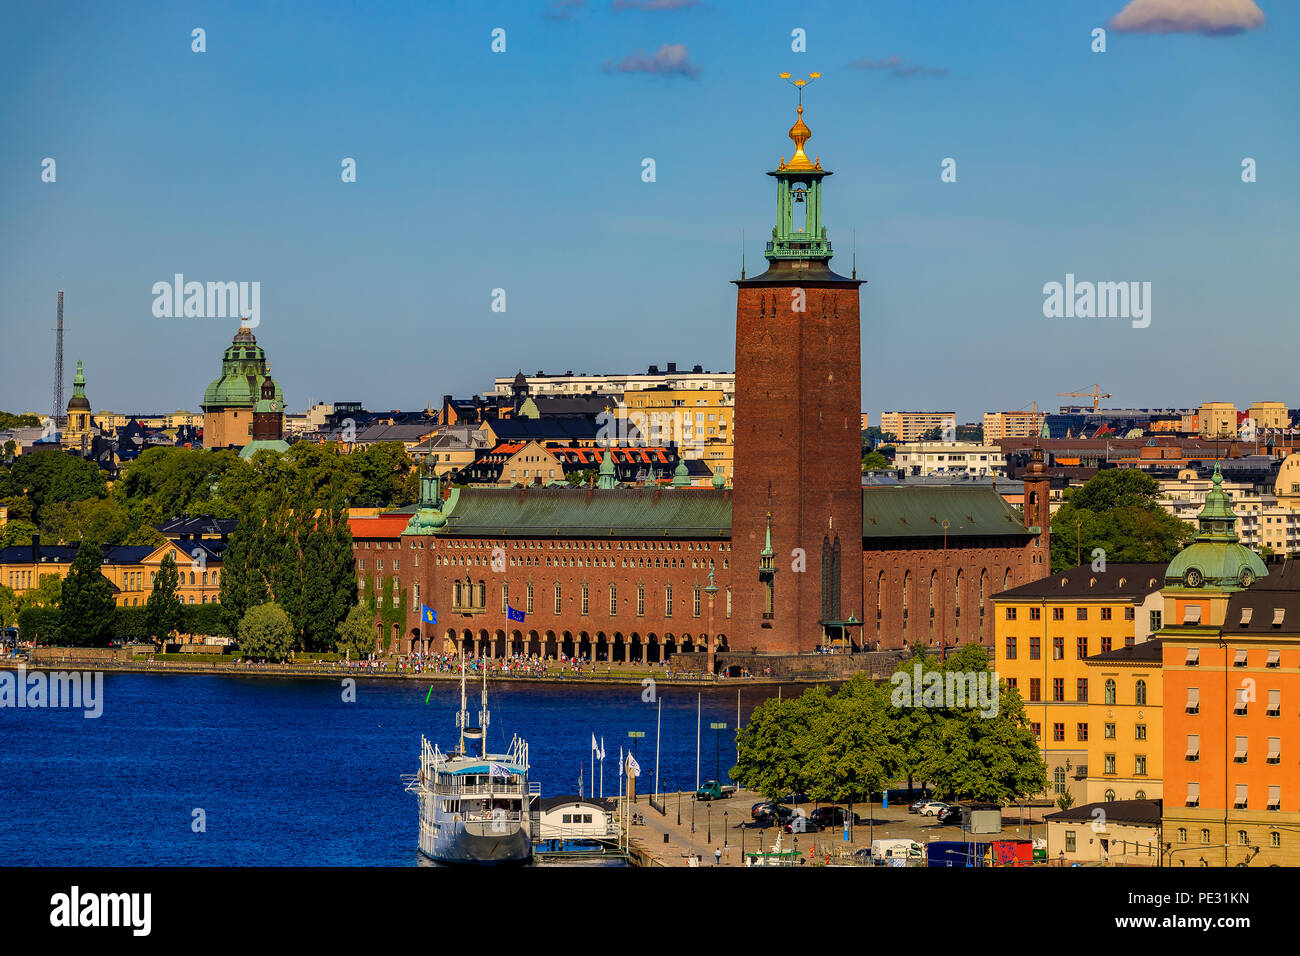 Stockholm, Sweden - August 11, 2017: View onto City Hall, Stadshuset, in Kungsholmen island and traditional gothic buildings in old town - Stock Image